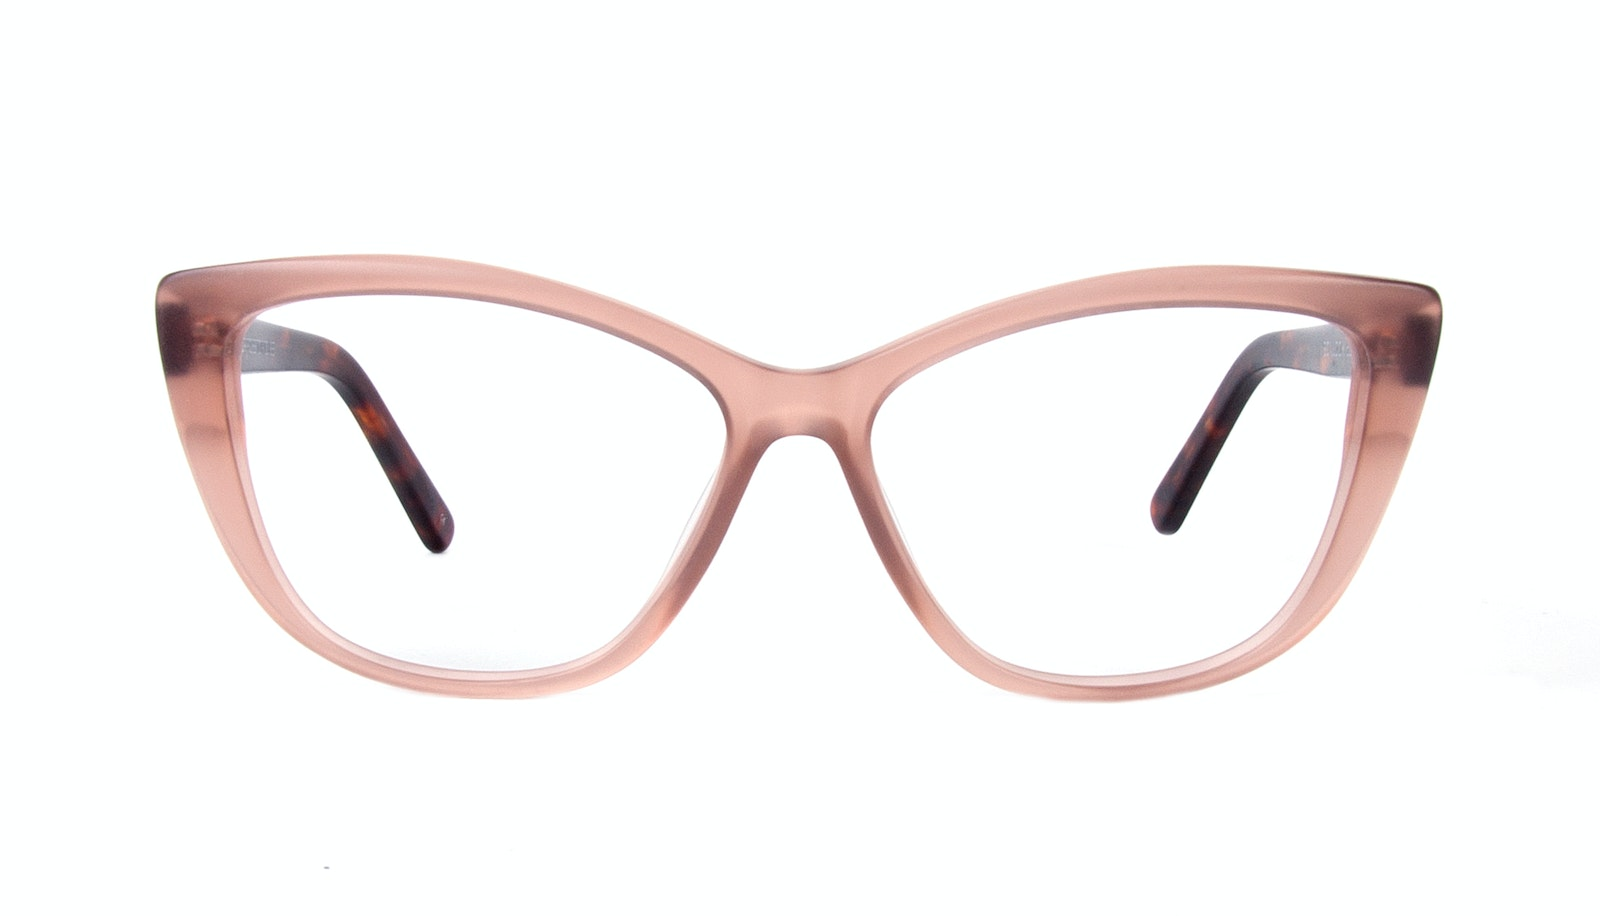 Affordable Fashion Glasses Cat Eye Daring Cateye Eyeglasses Women Dolled Up Rose Tortoise Matte